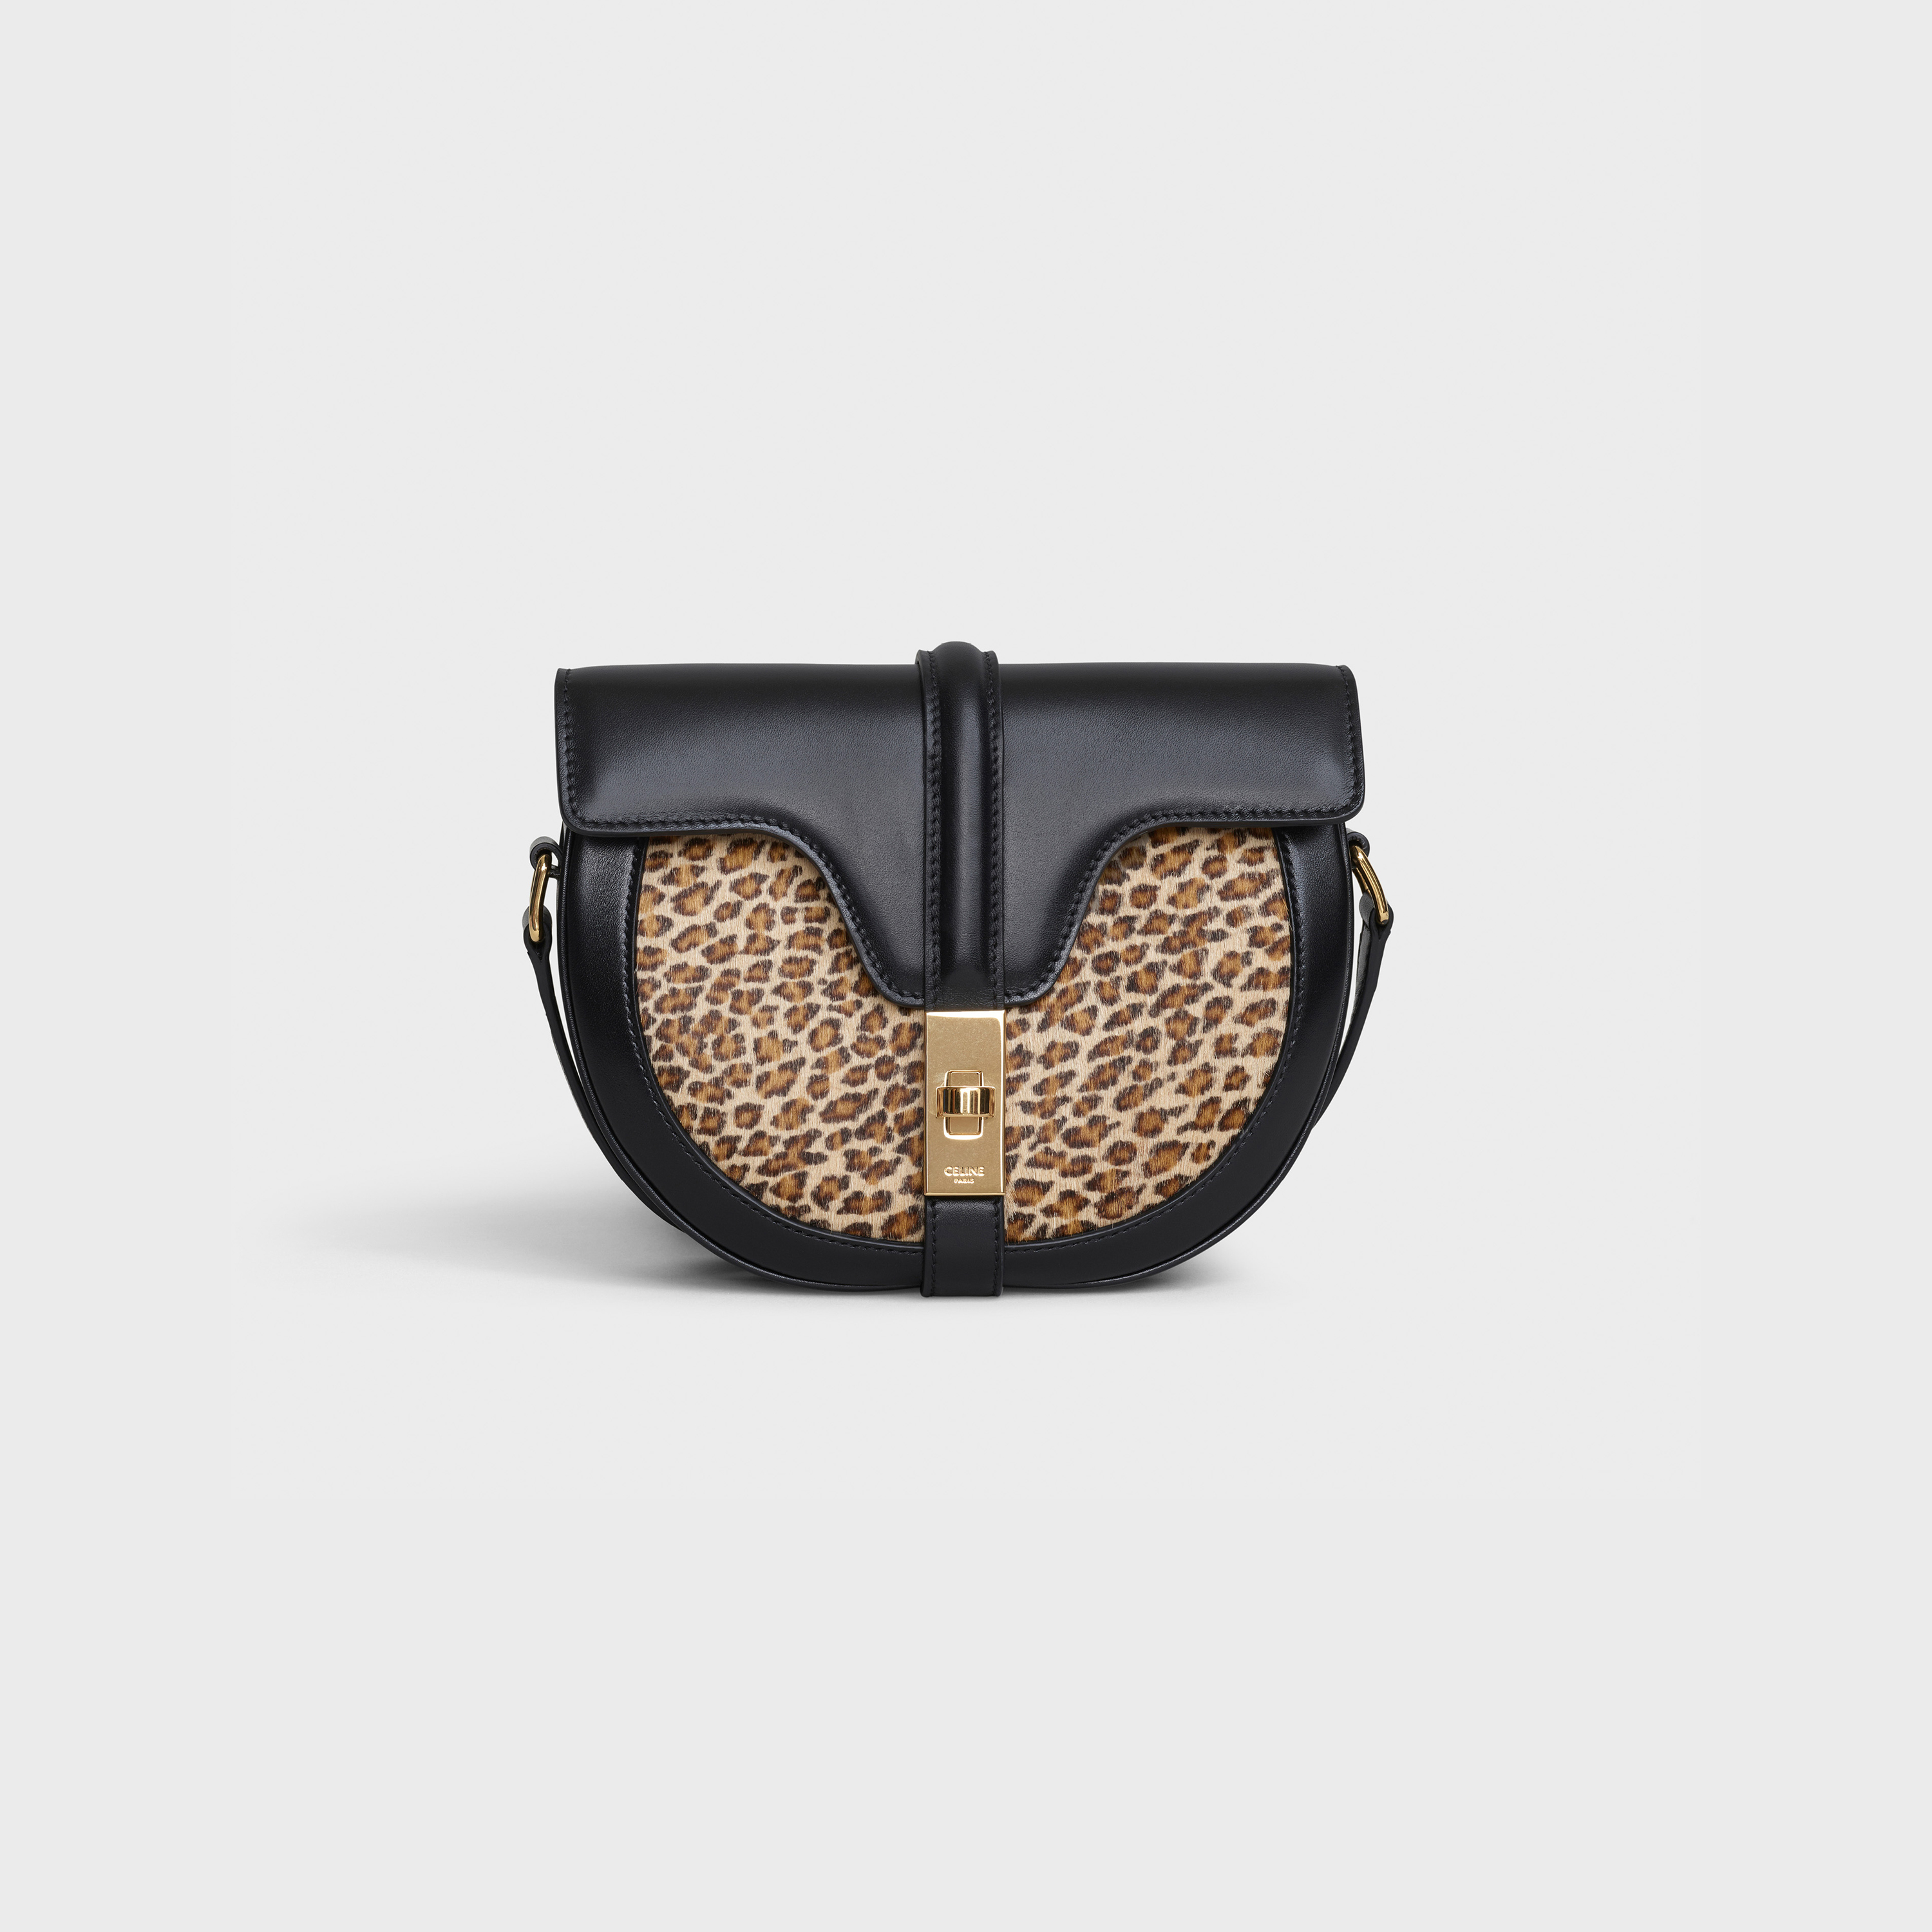 Small Besace 16 Bag in pony calfskin with leopard print | CELINE